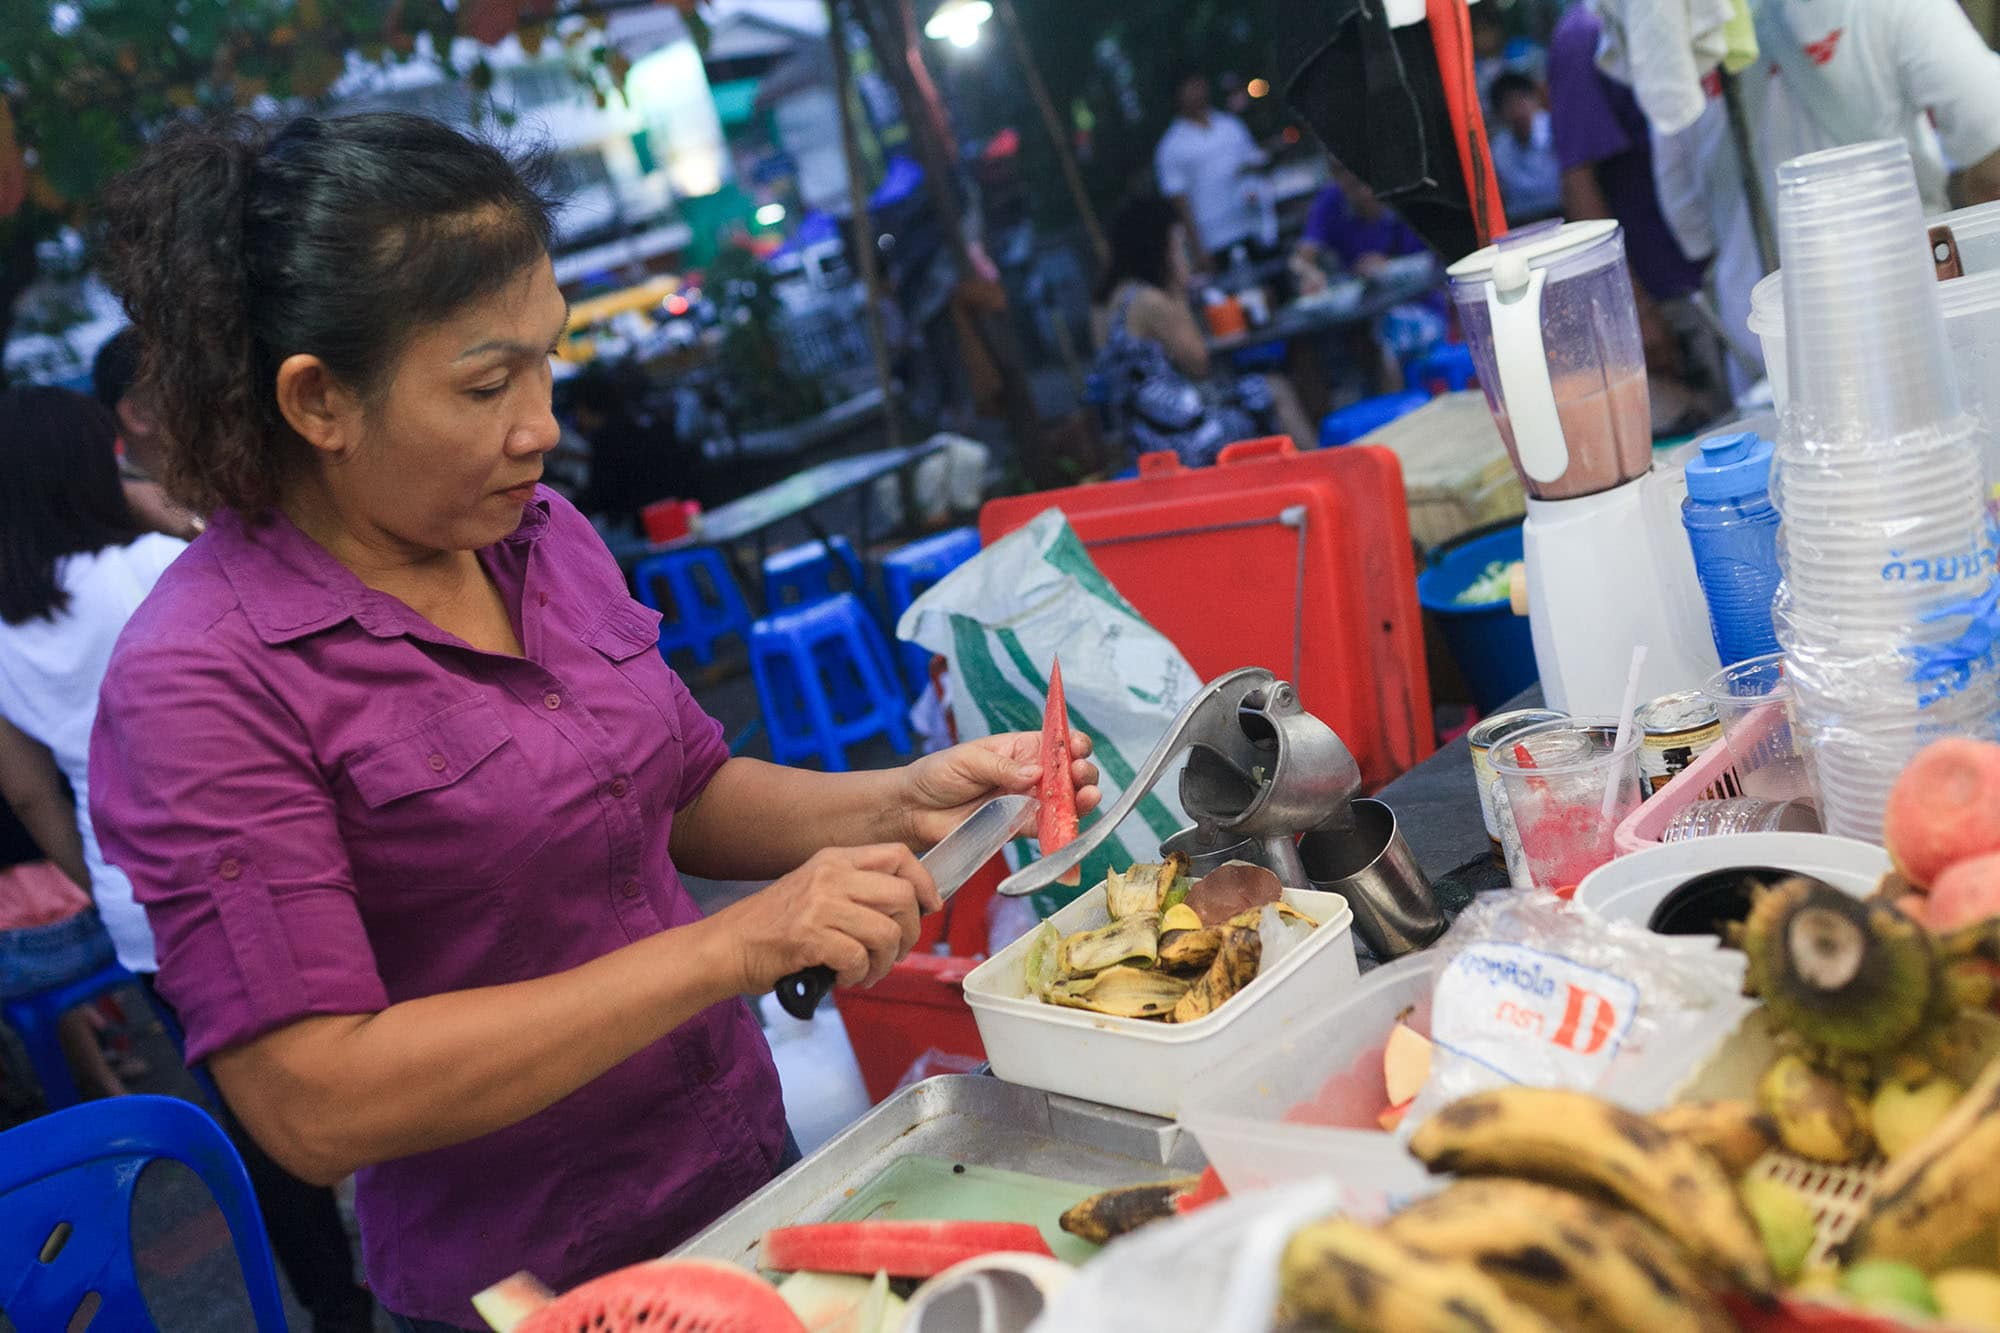 Fruit shake lady in Chiang Mai, Thailand.